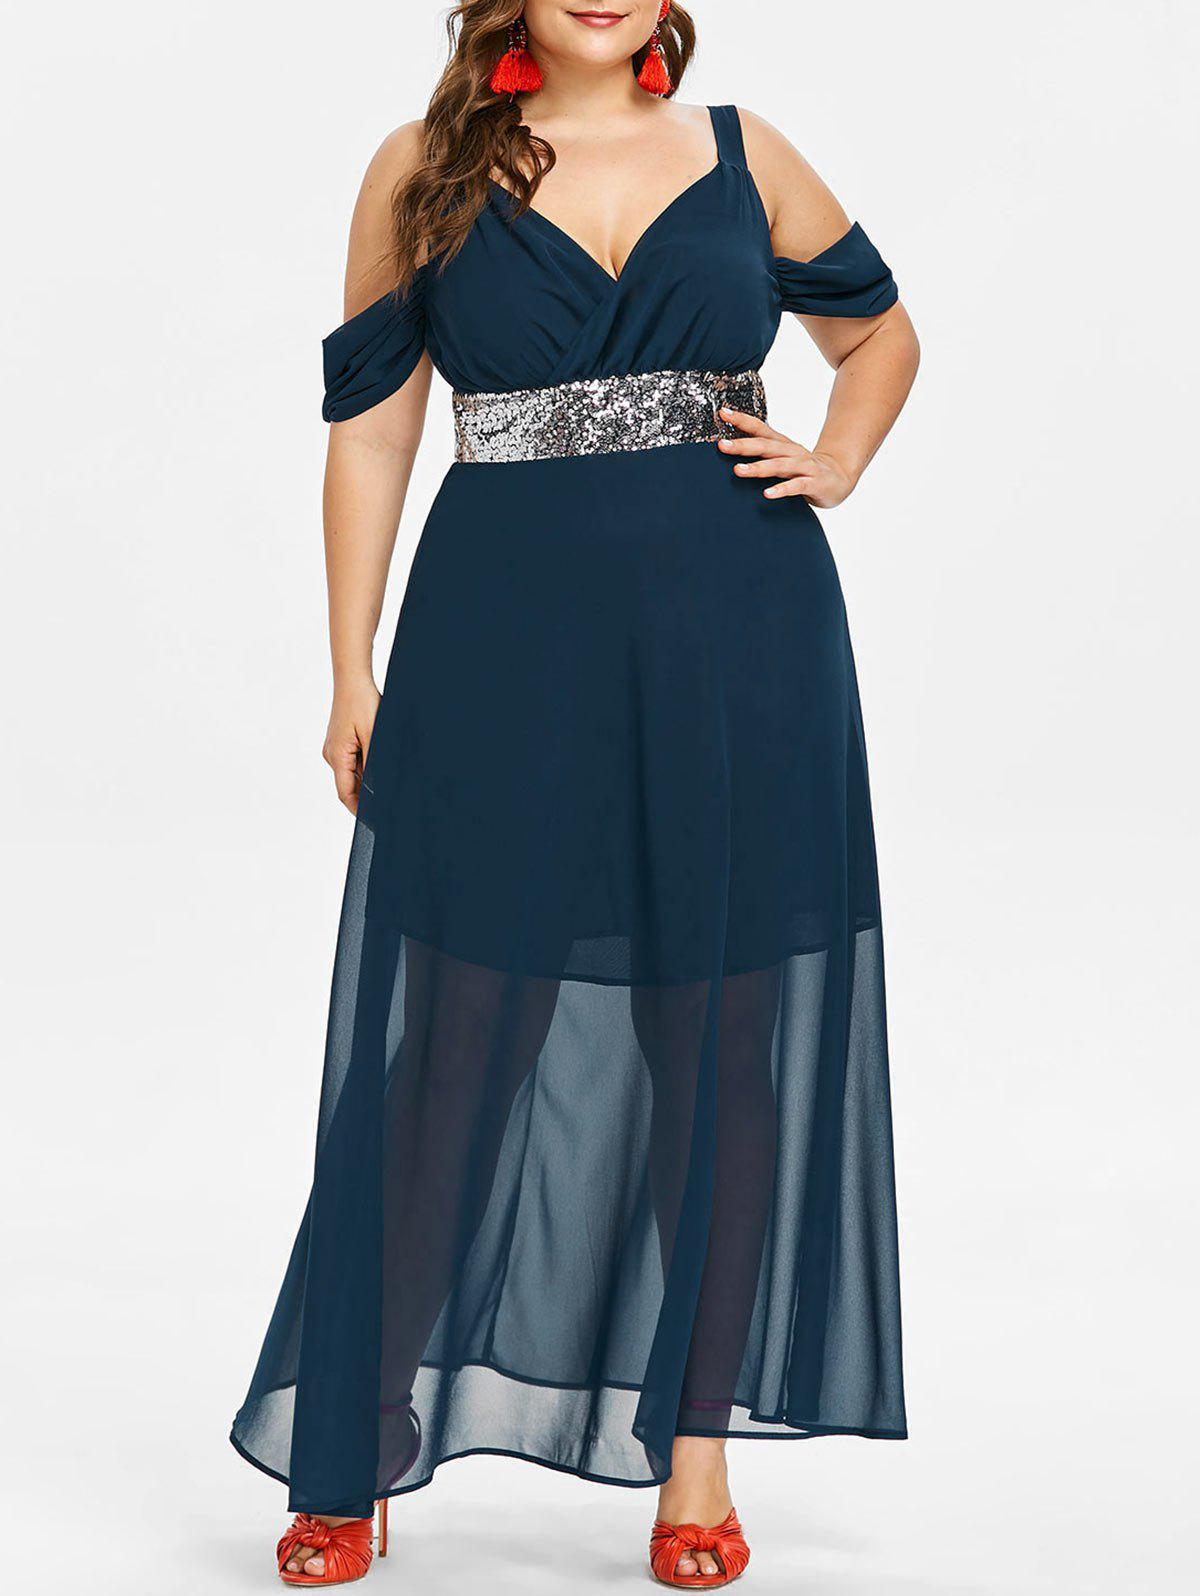 Plus Size Mother of The Sequins Maxi Bride Dress